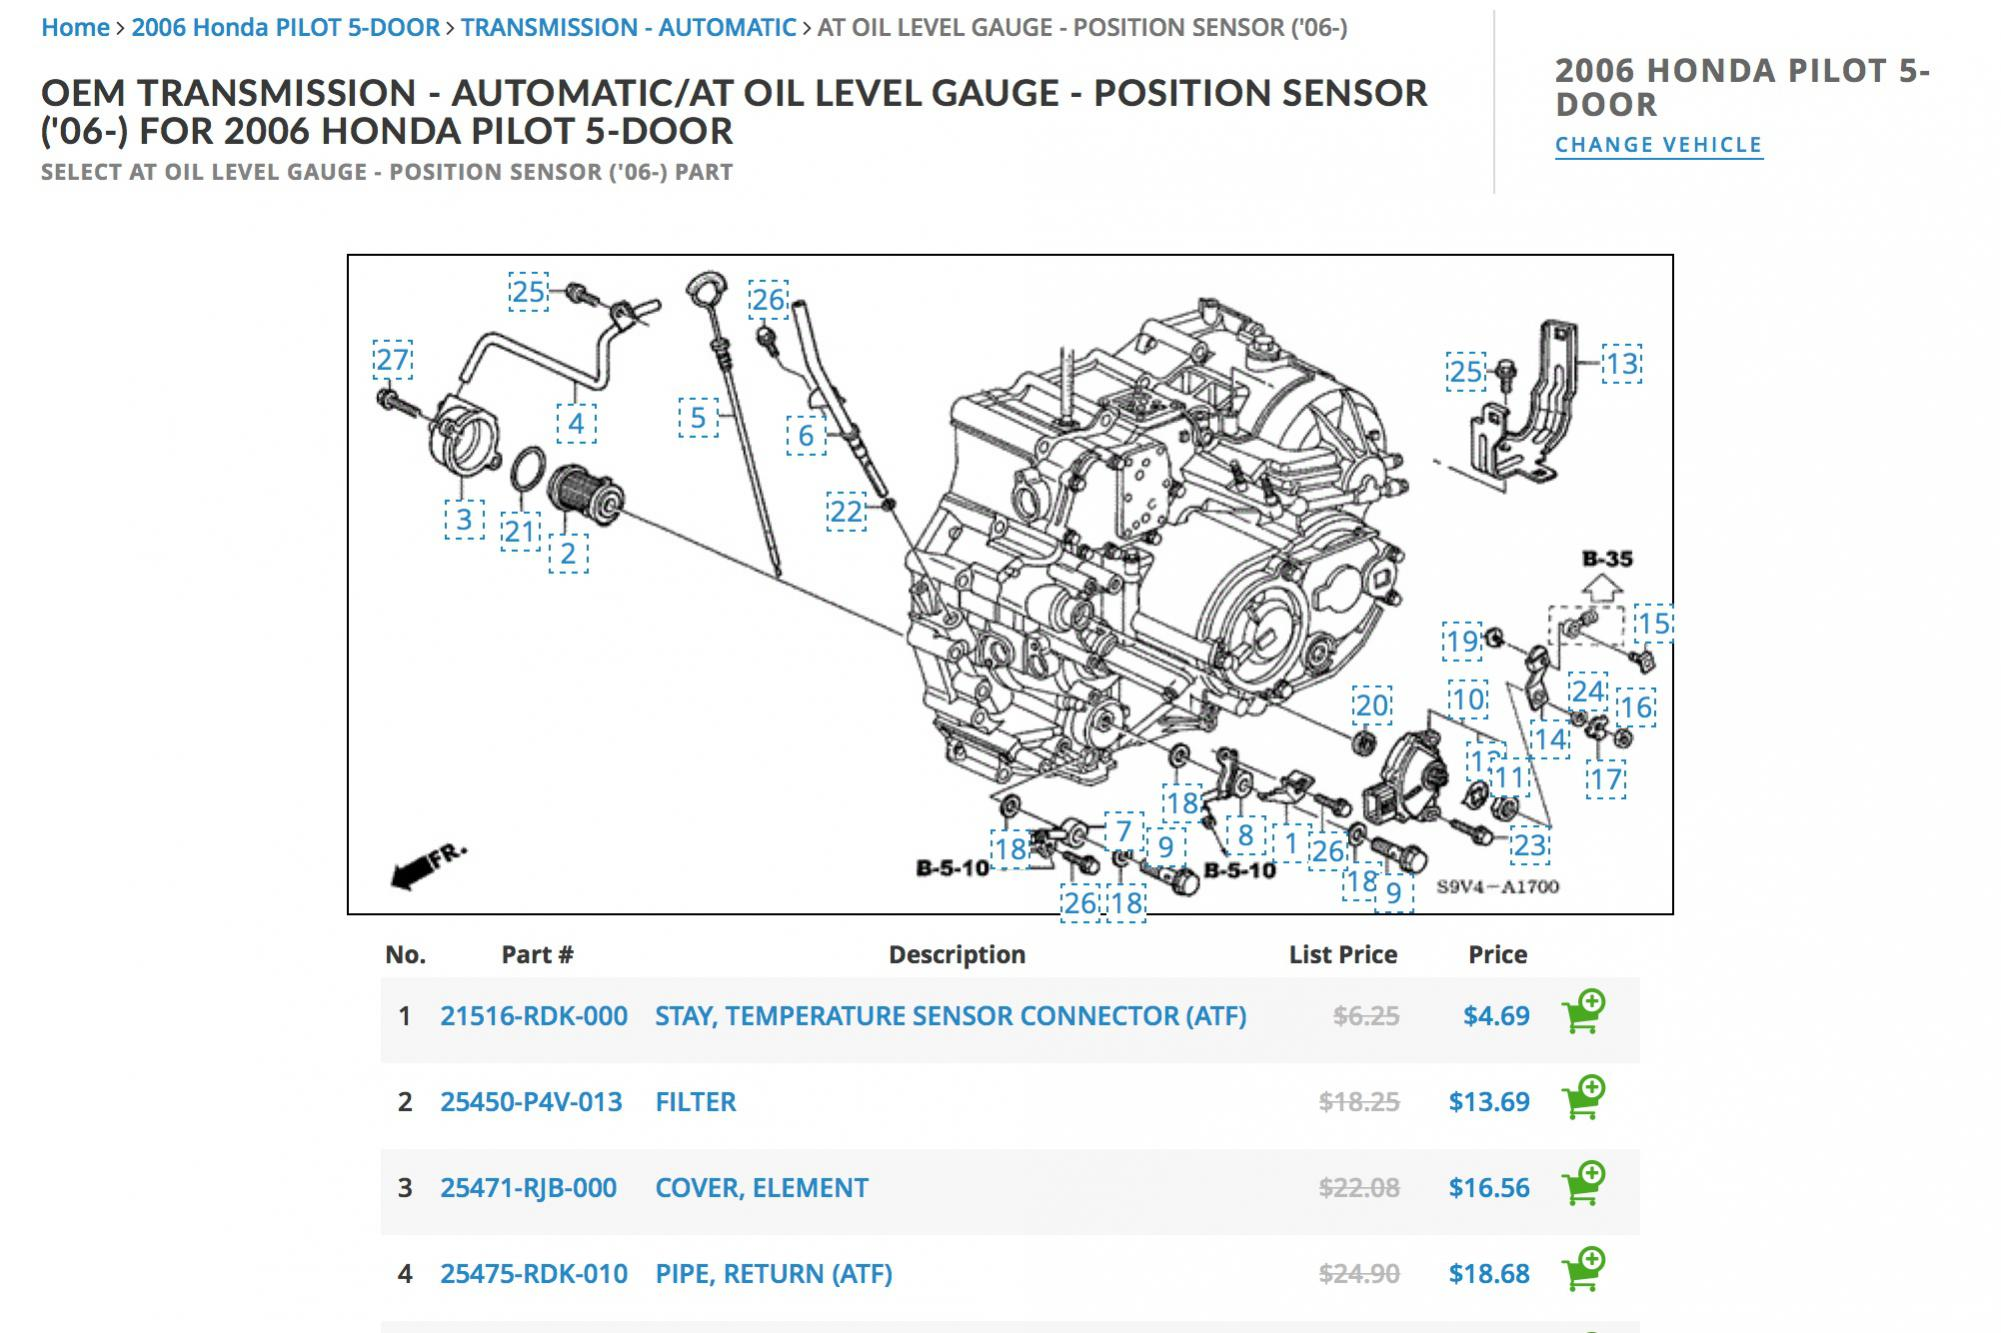 2006 Honda Pilot Transmission Diagram Trusted Wiring Diagrams Infiniti Service Forums M35